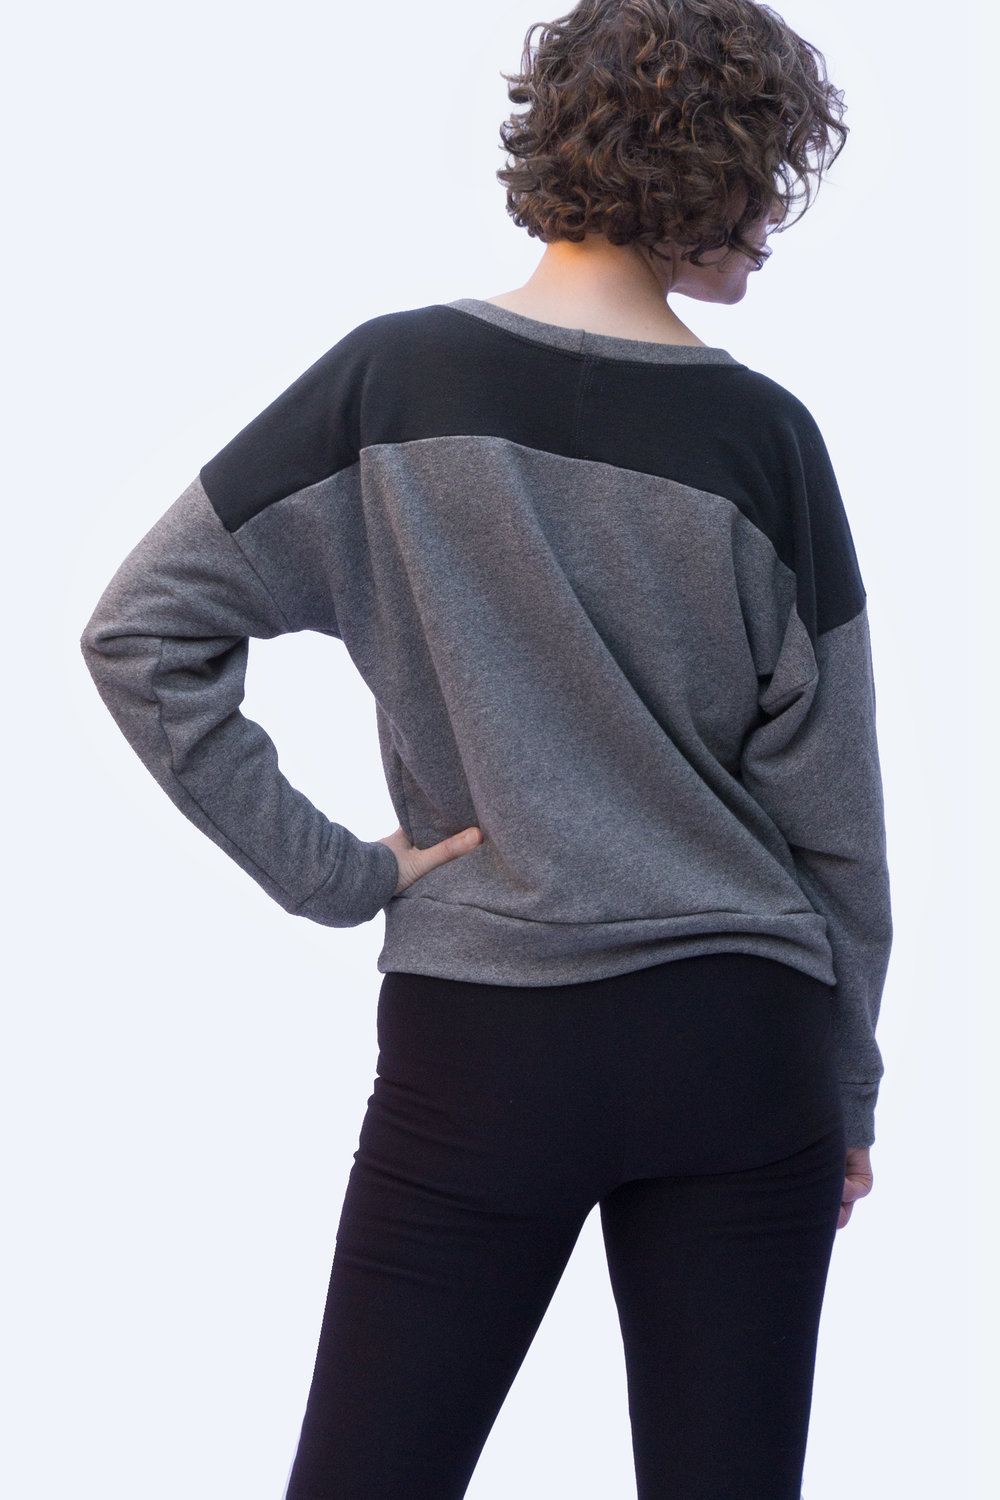 Introducing the Ali Sweatshirt PDF Pattern by Sew DIY